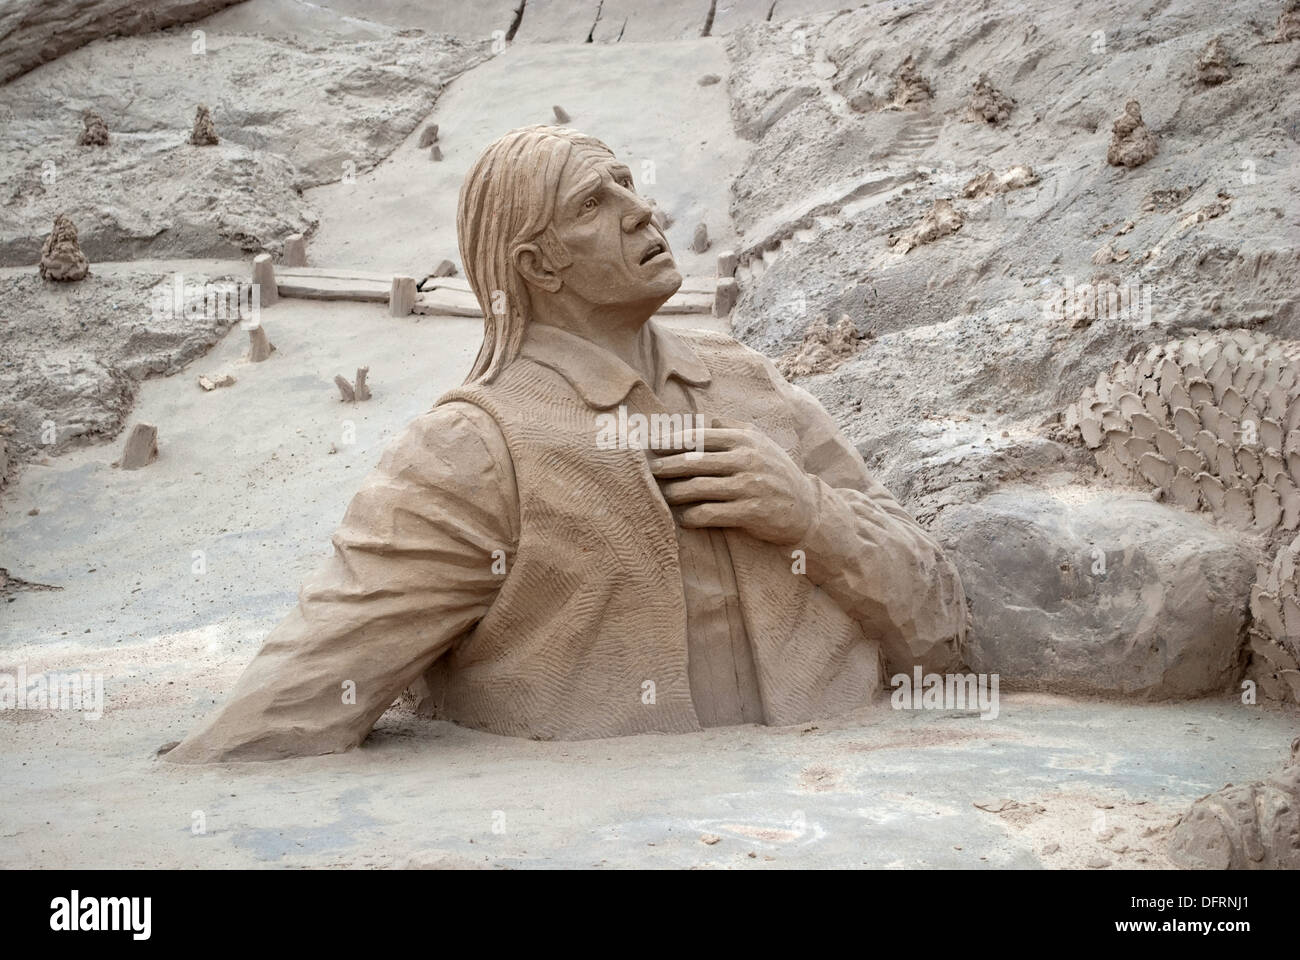 Sand sculpture on the city beach. - Stock Image